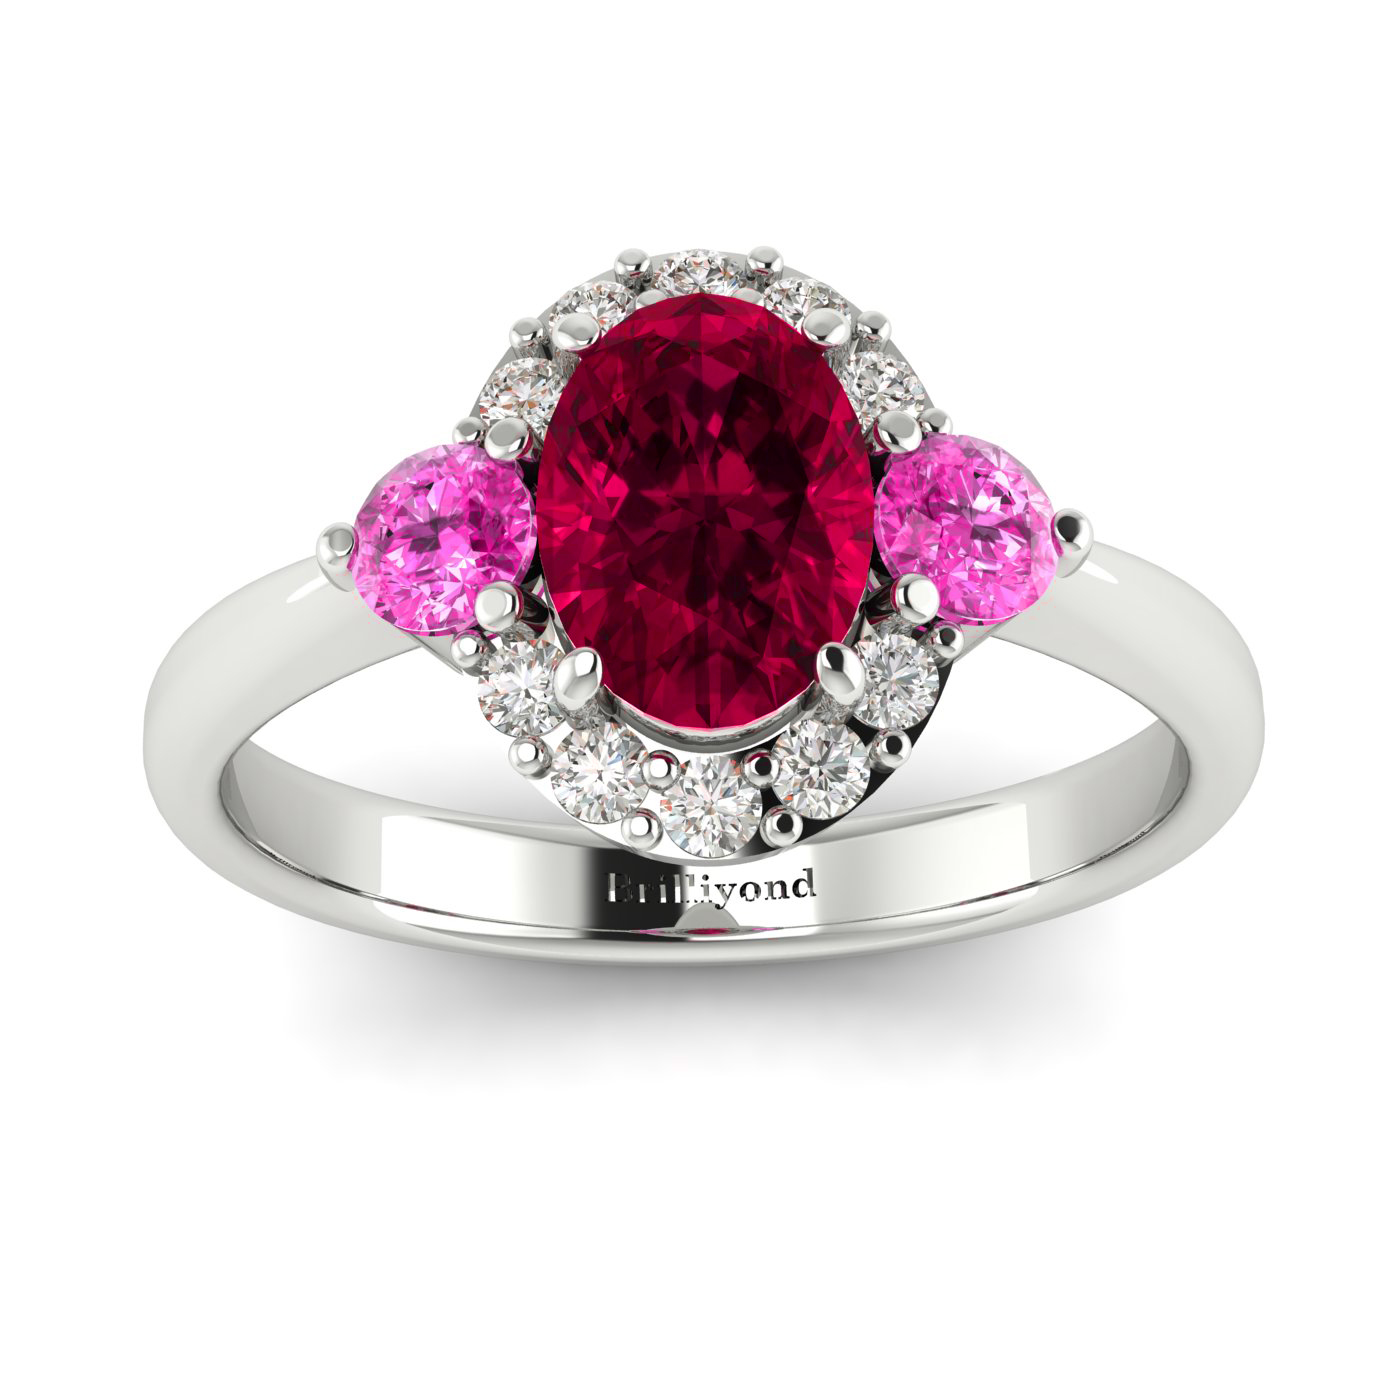 Oval Cut Red Ruby with Pink Ceylon Sapphires and Conflict-free Diamonds